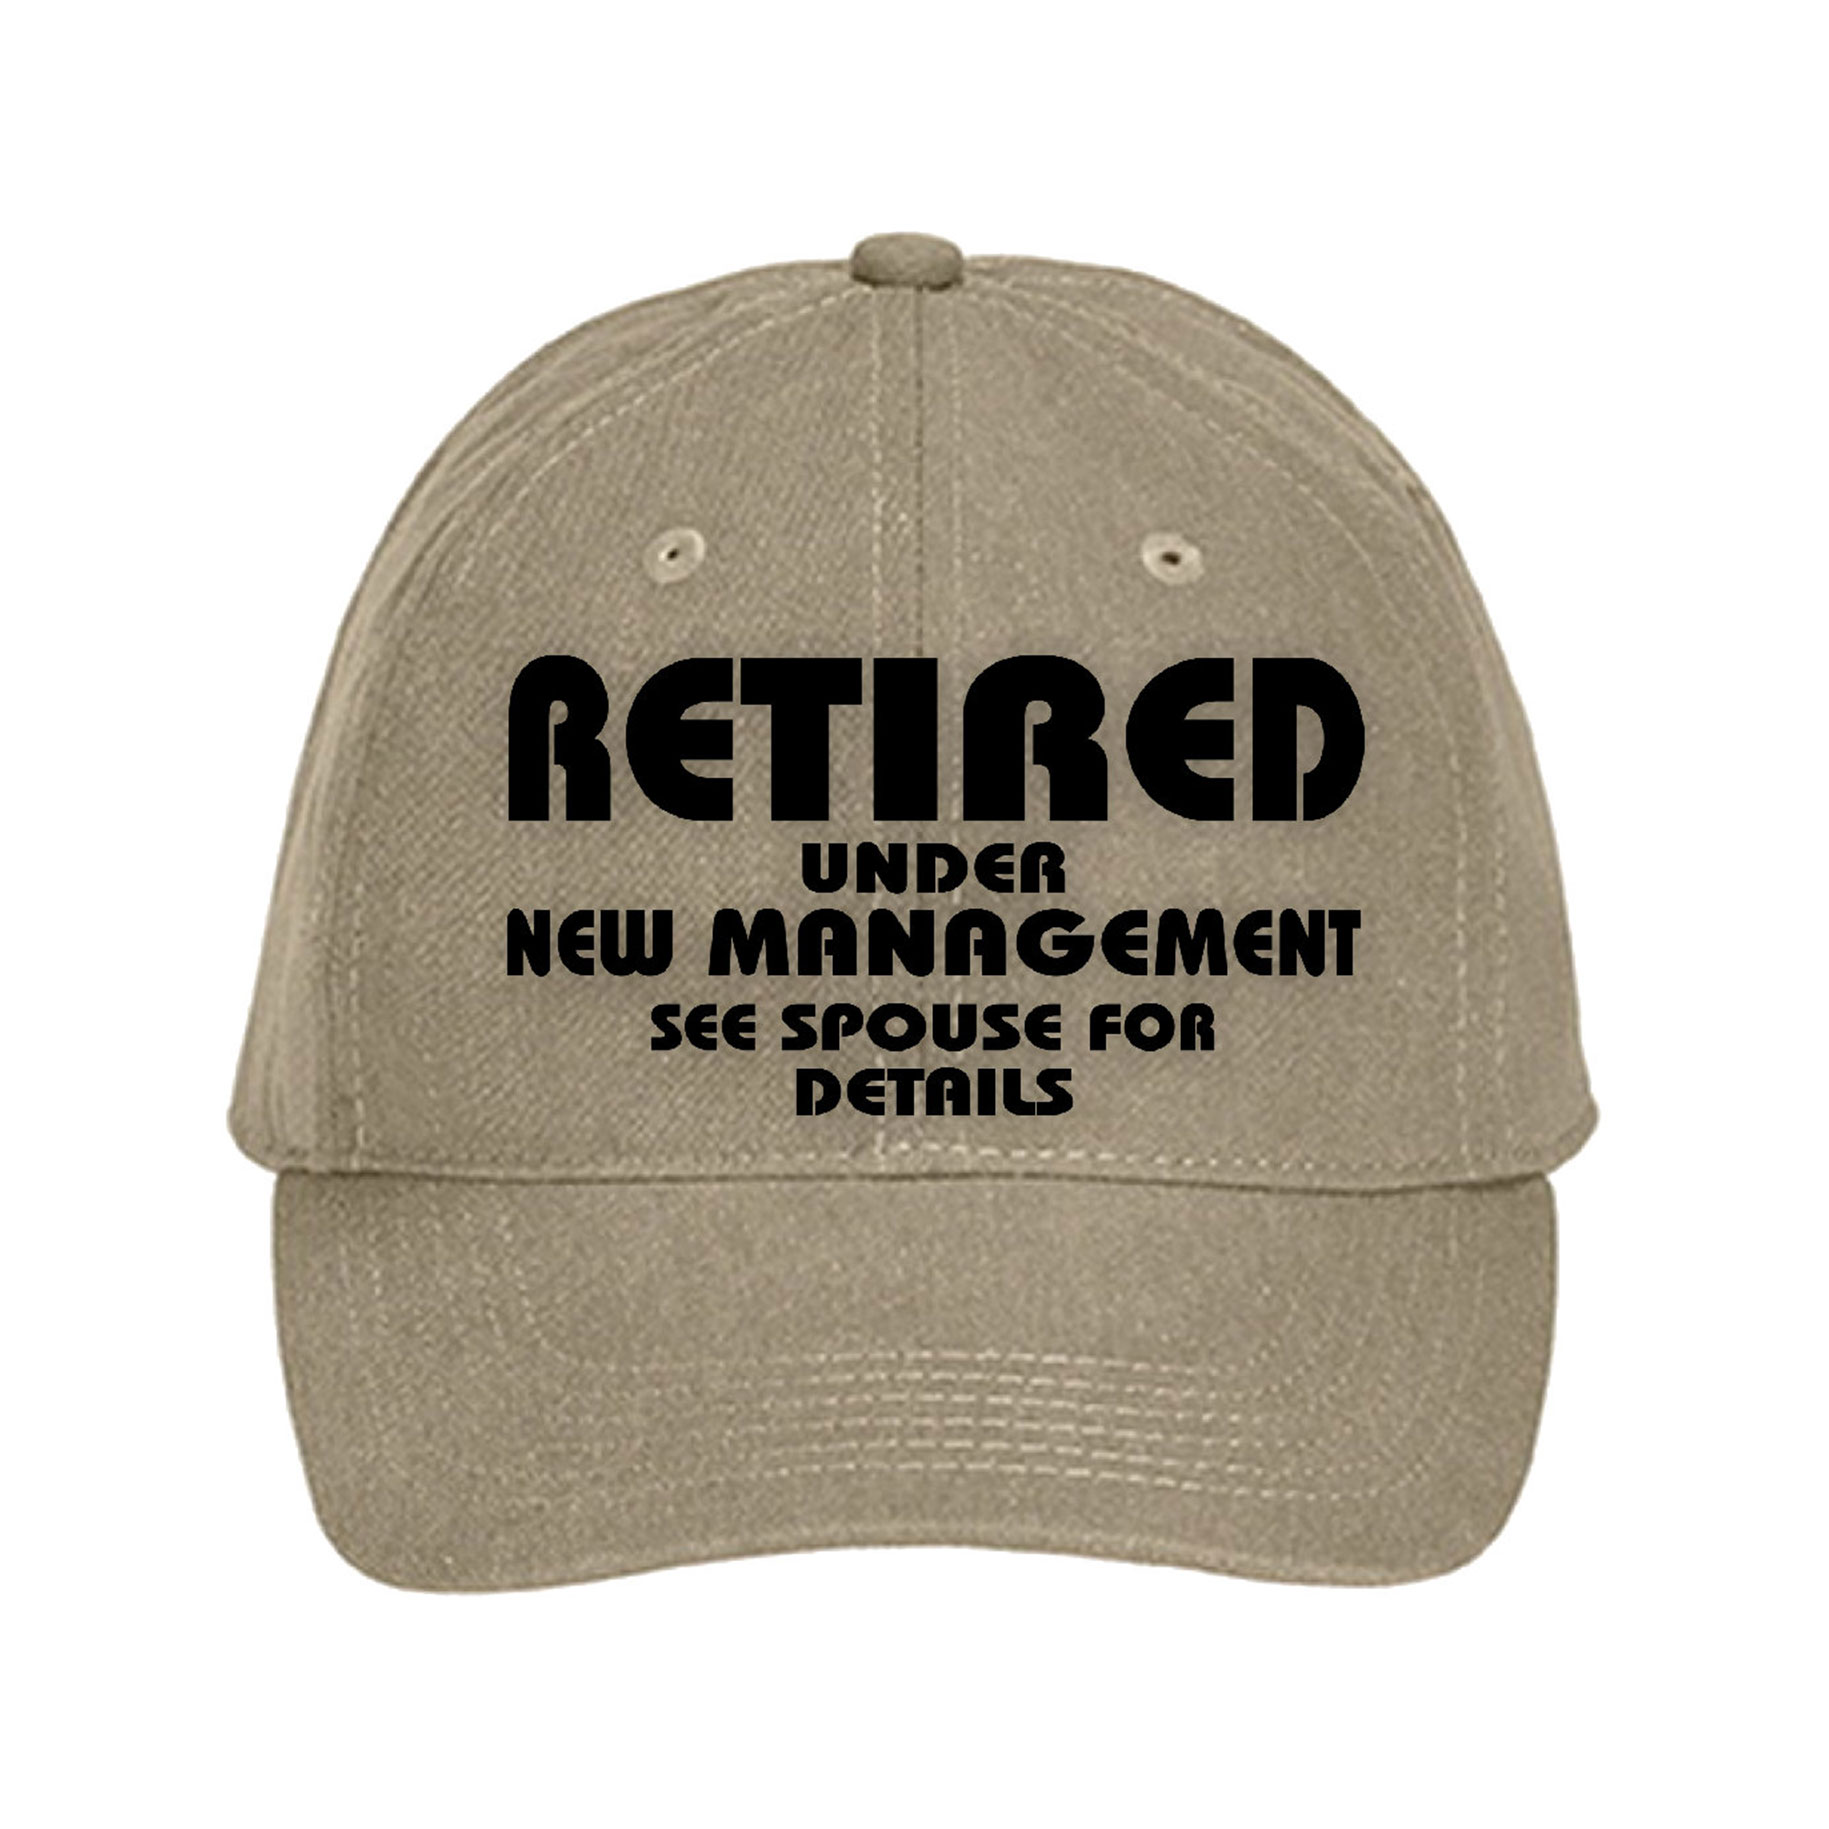 retirement-hat-under-new-management.jpg